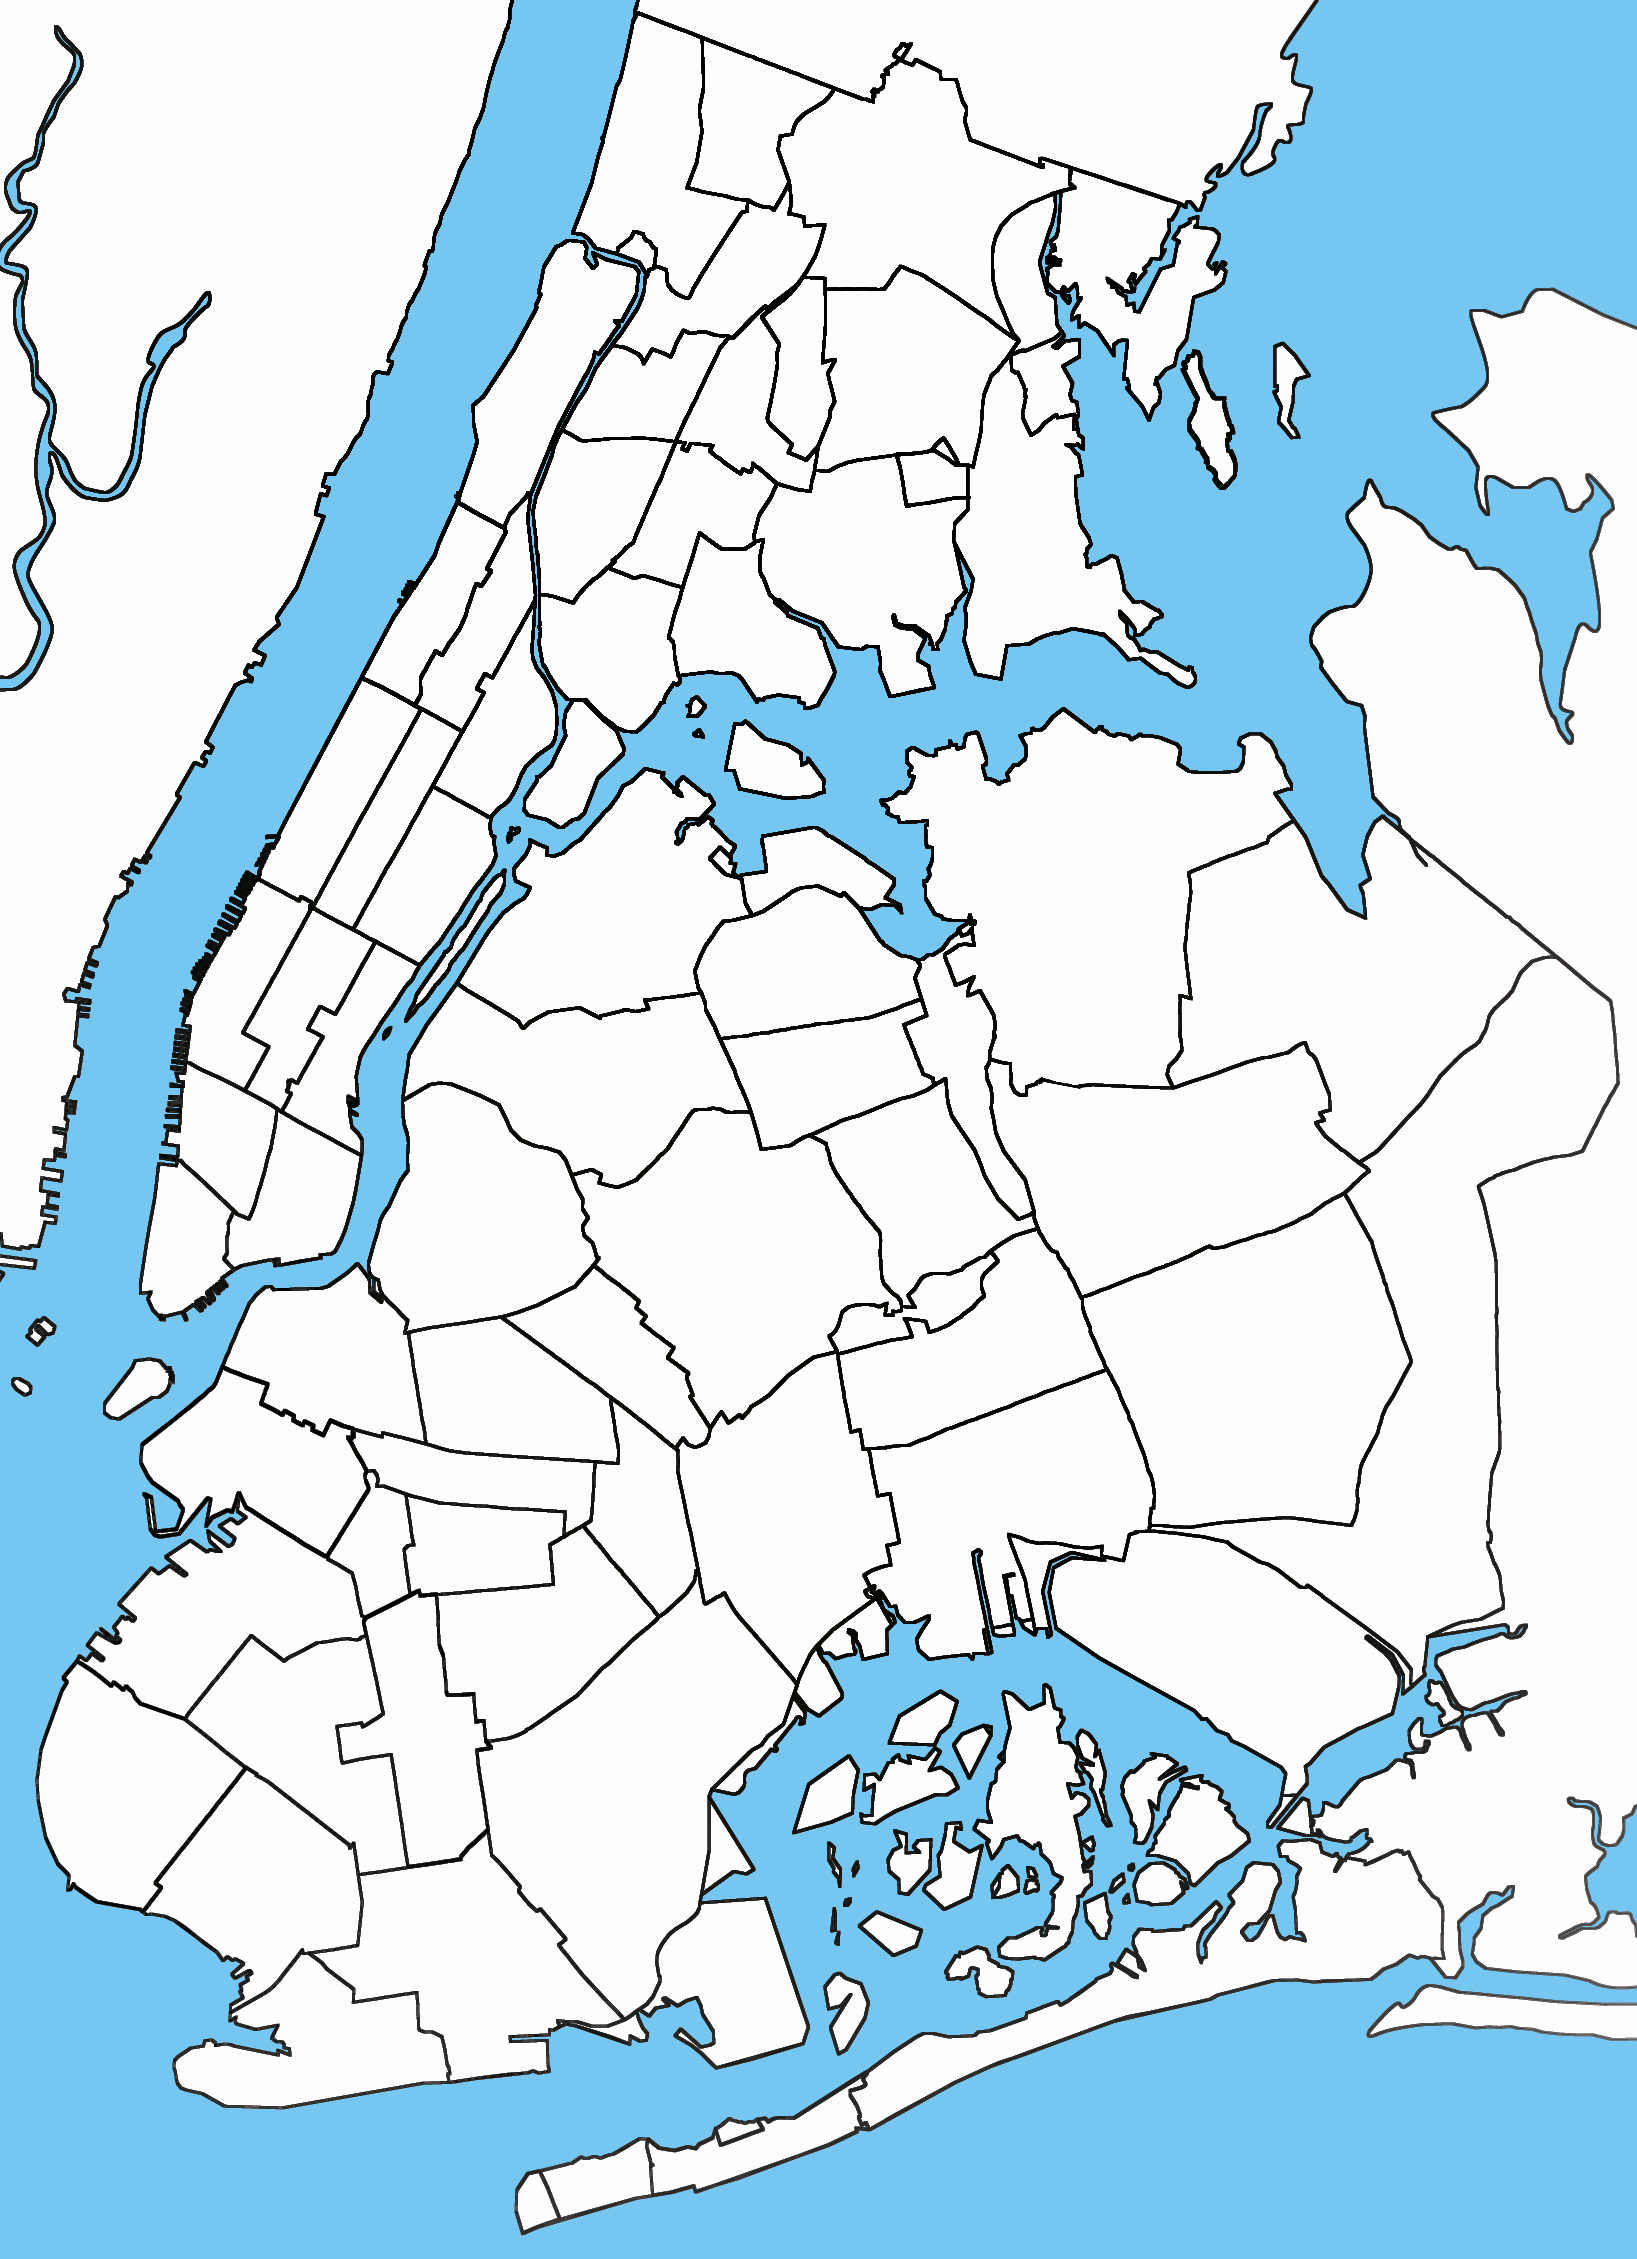 Blank City Map Template Unique Blank Usable Map Of Nyc Boroughs